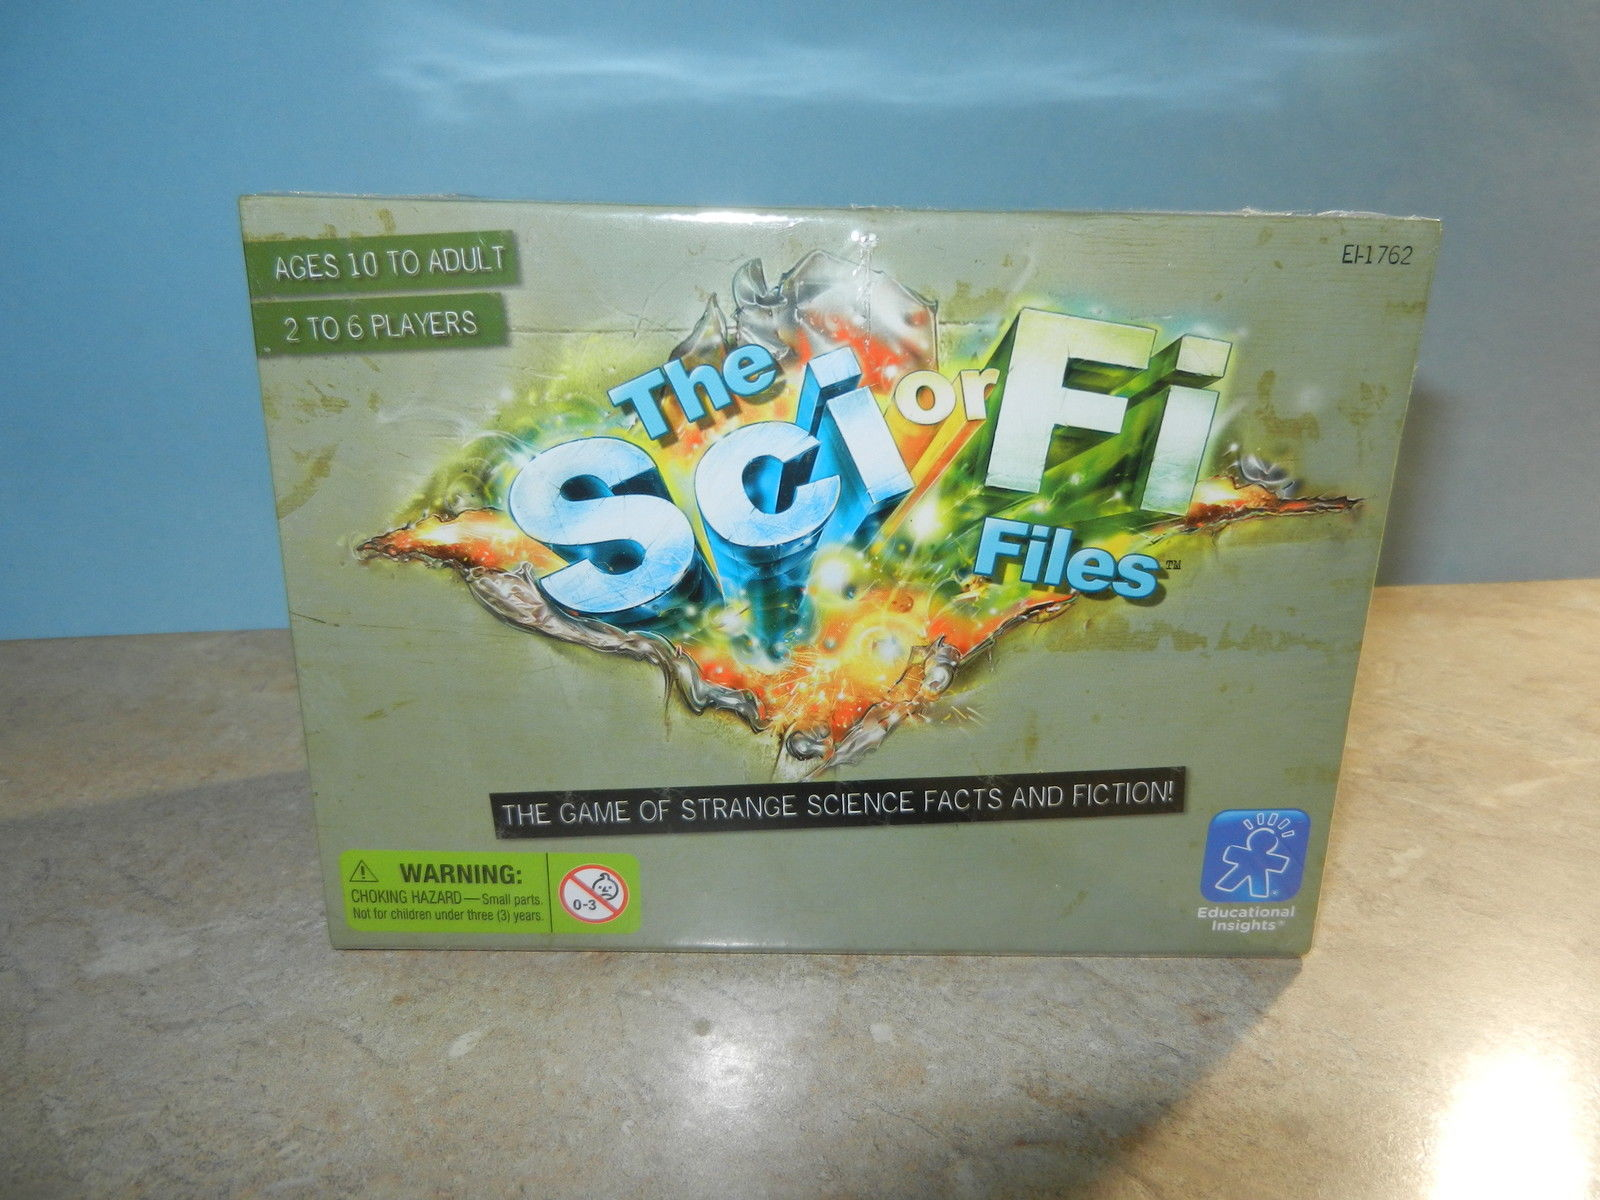 Primary image for The Sci or Fi Files Family SciFi Strange Facts and Fiction Game NEW in Box